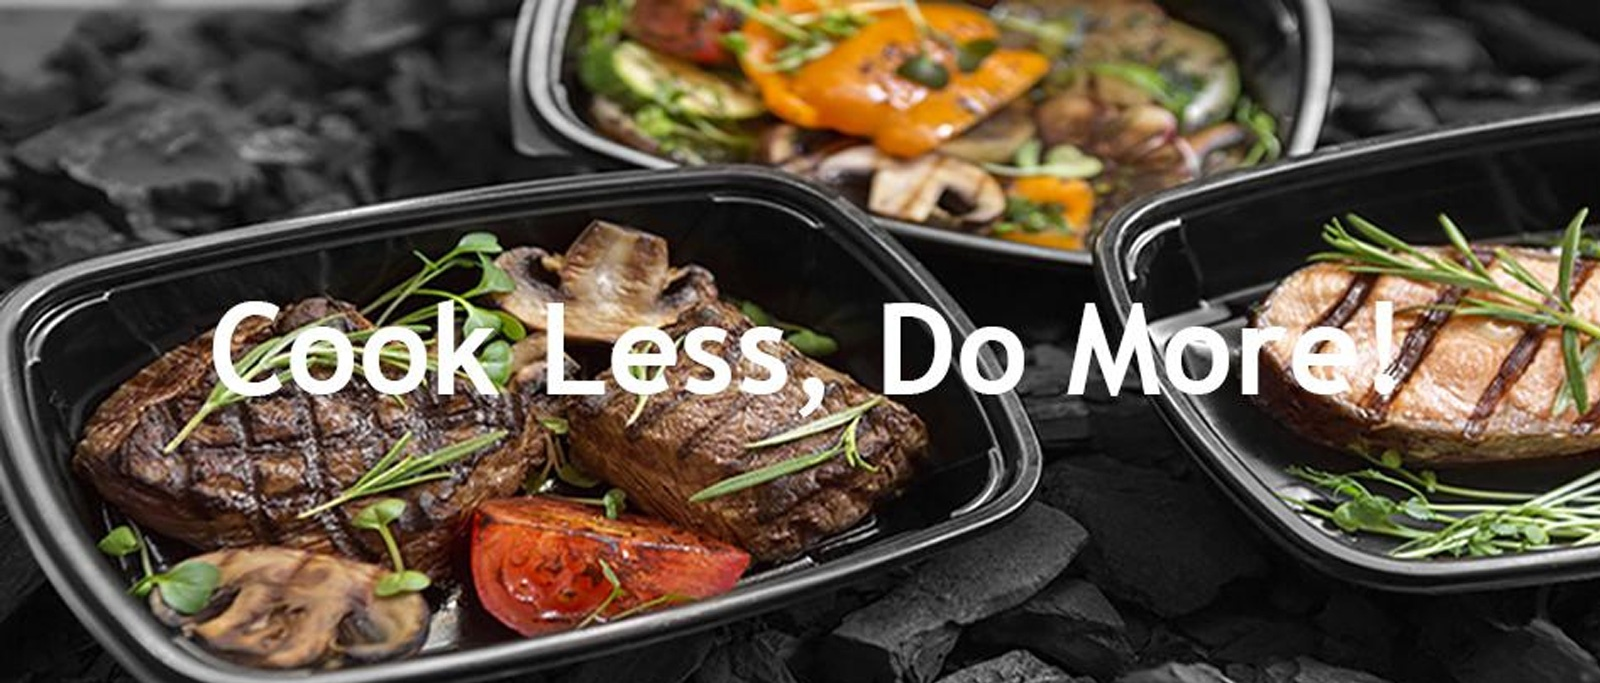 Cook Less, Do More - Food-Eaze